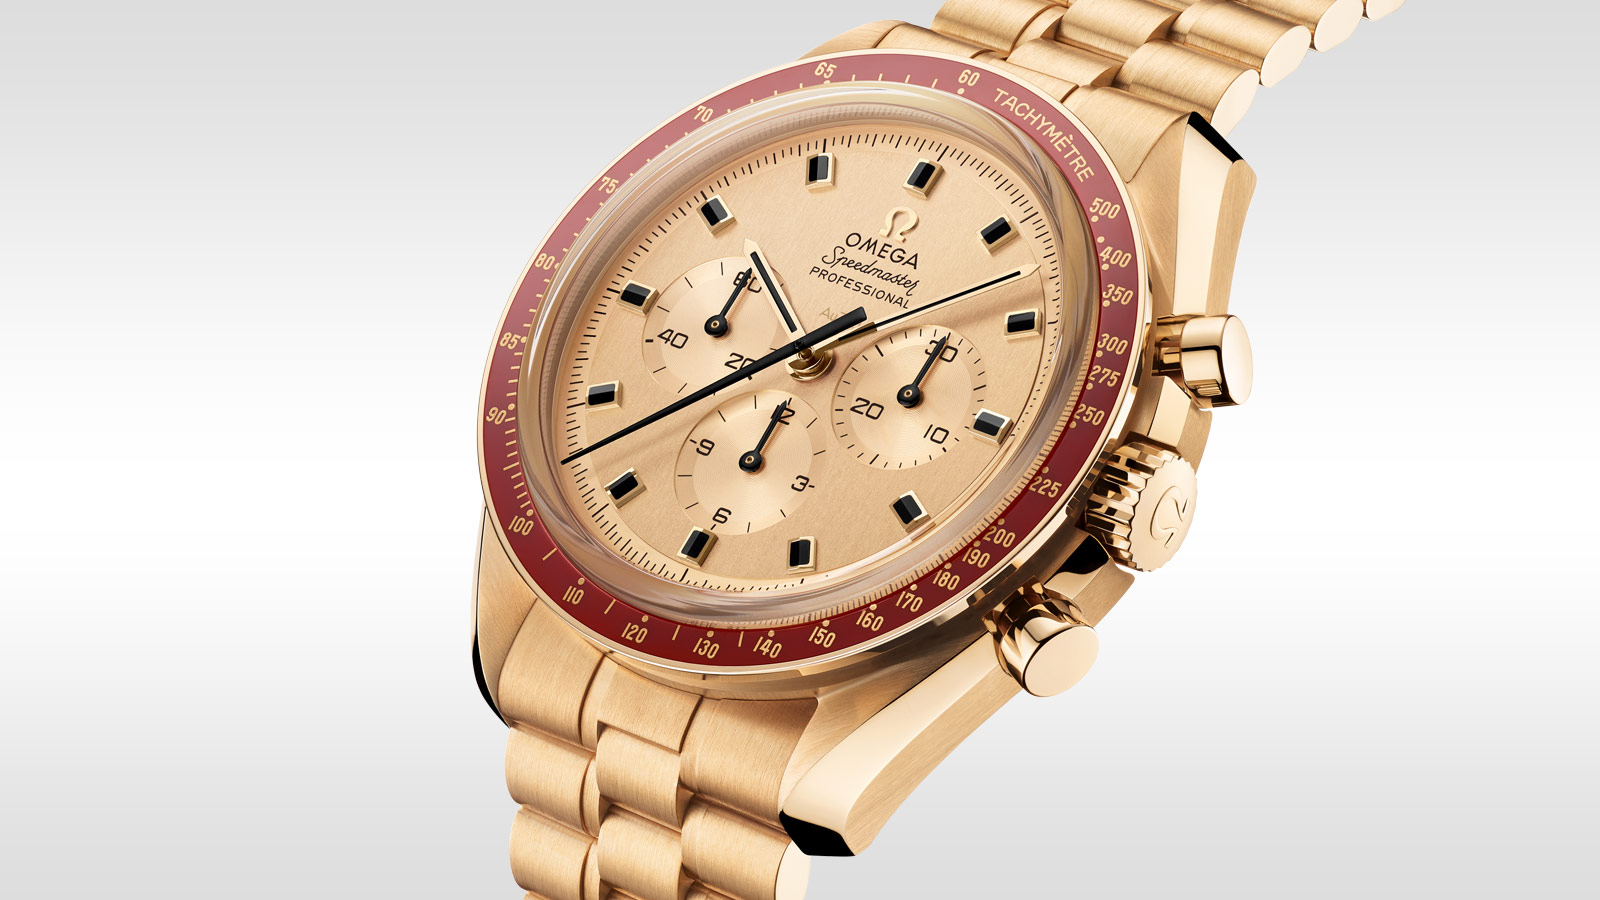 Speedmaster Moonwatch Moonwatch Anniversary Limited Series - 310.60.42.50.99.001 - View 1